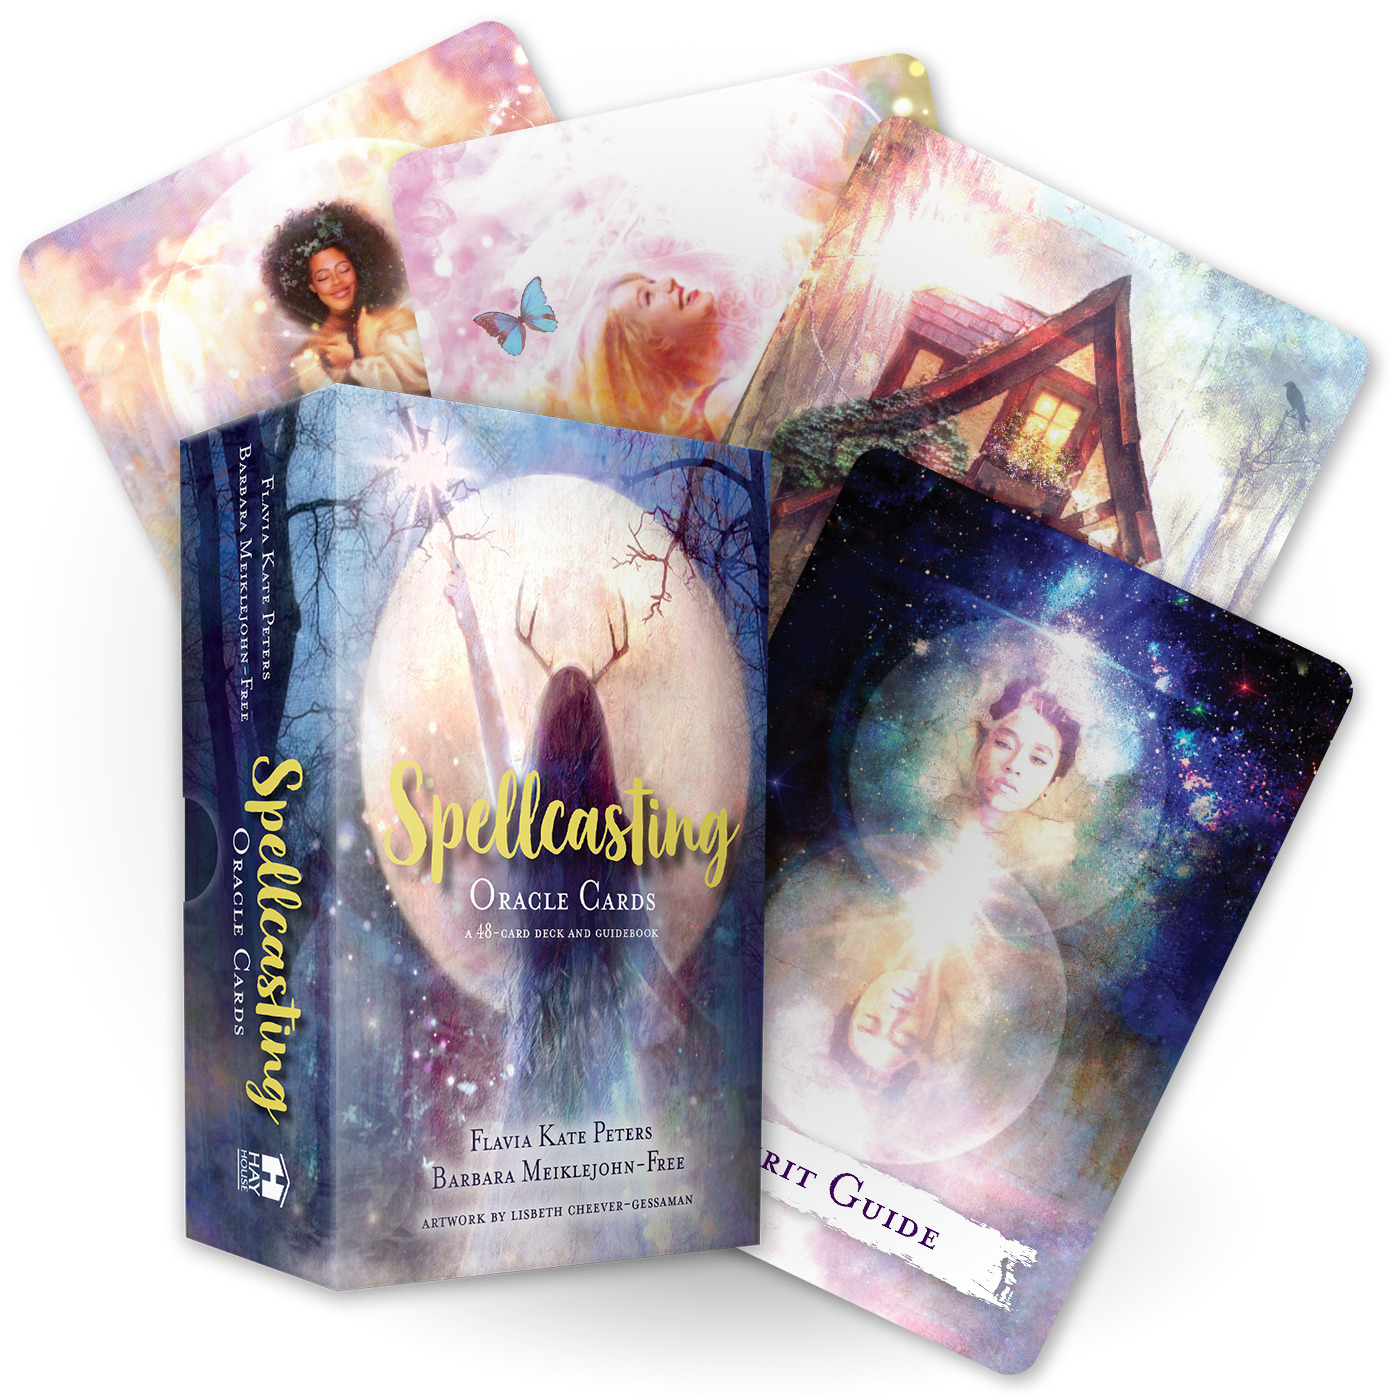 Spellcasting Oracle Cards : A 48-Card Deck and Guidebook | Faith & Spirituality